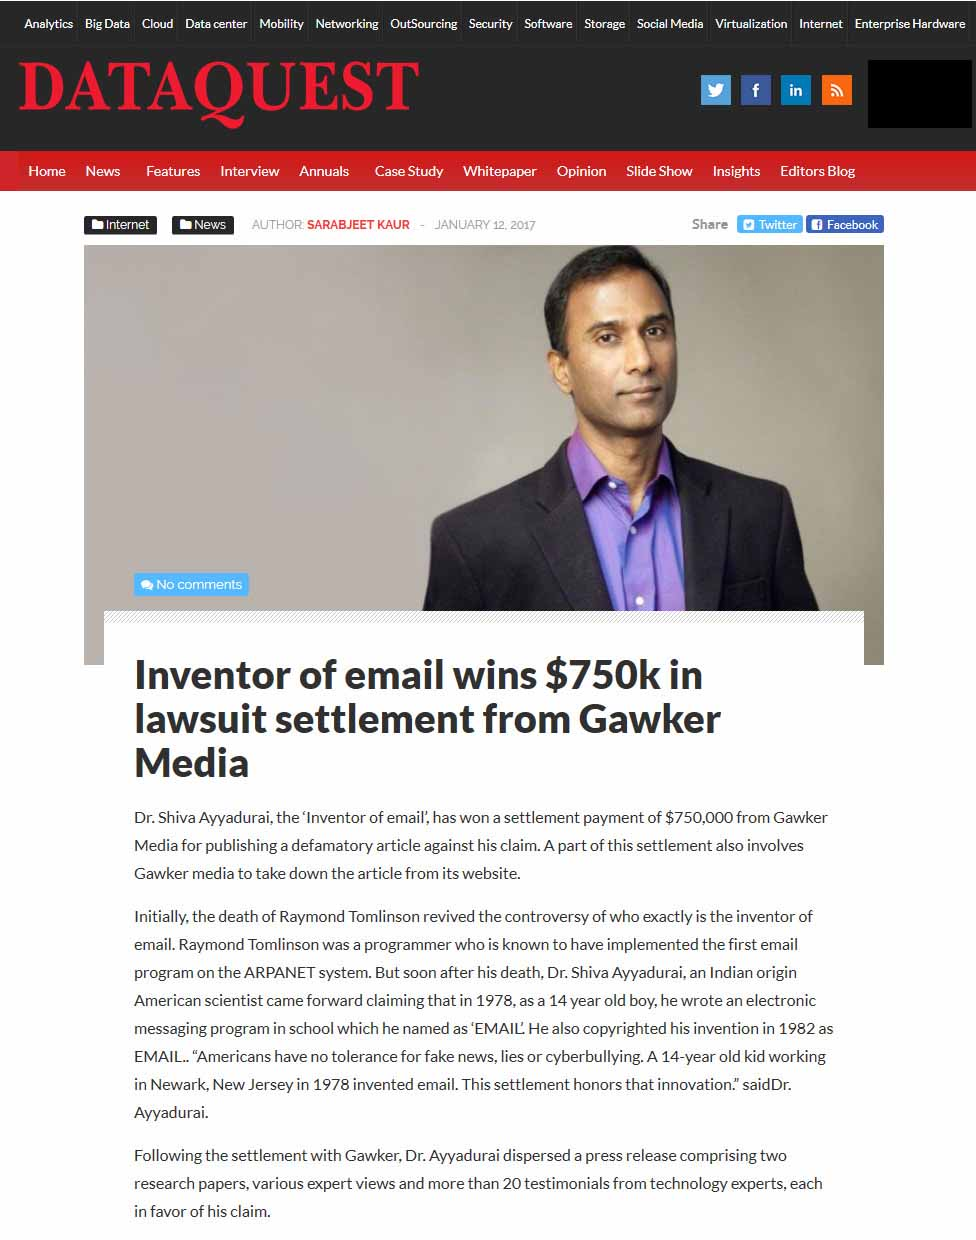 Inventor Of Email Wins $750k In Lawsuit Settlement From Gawker Media